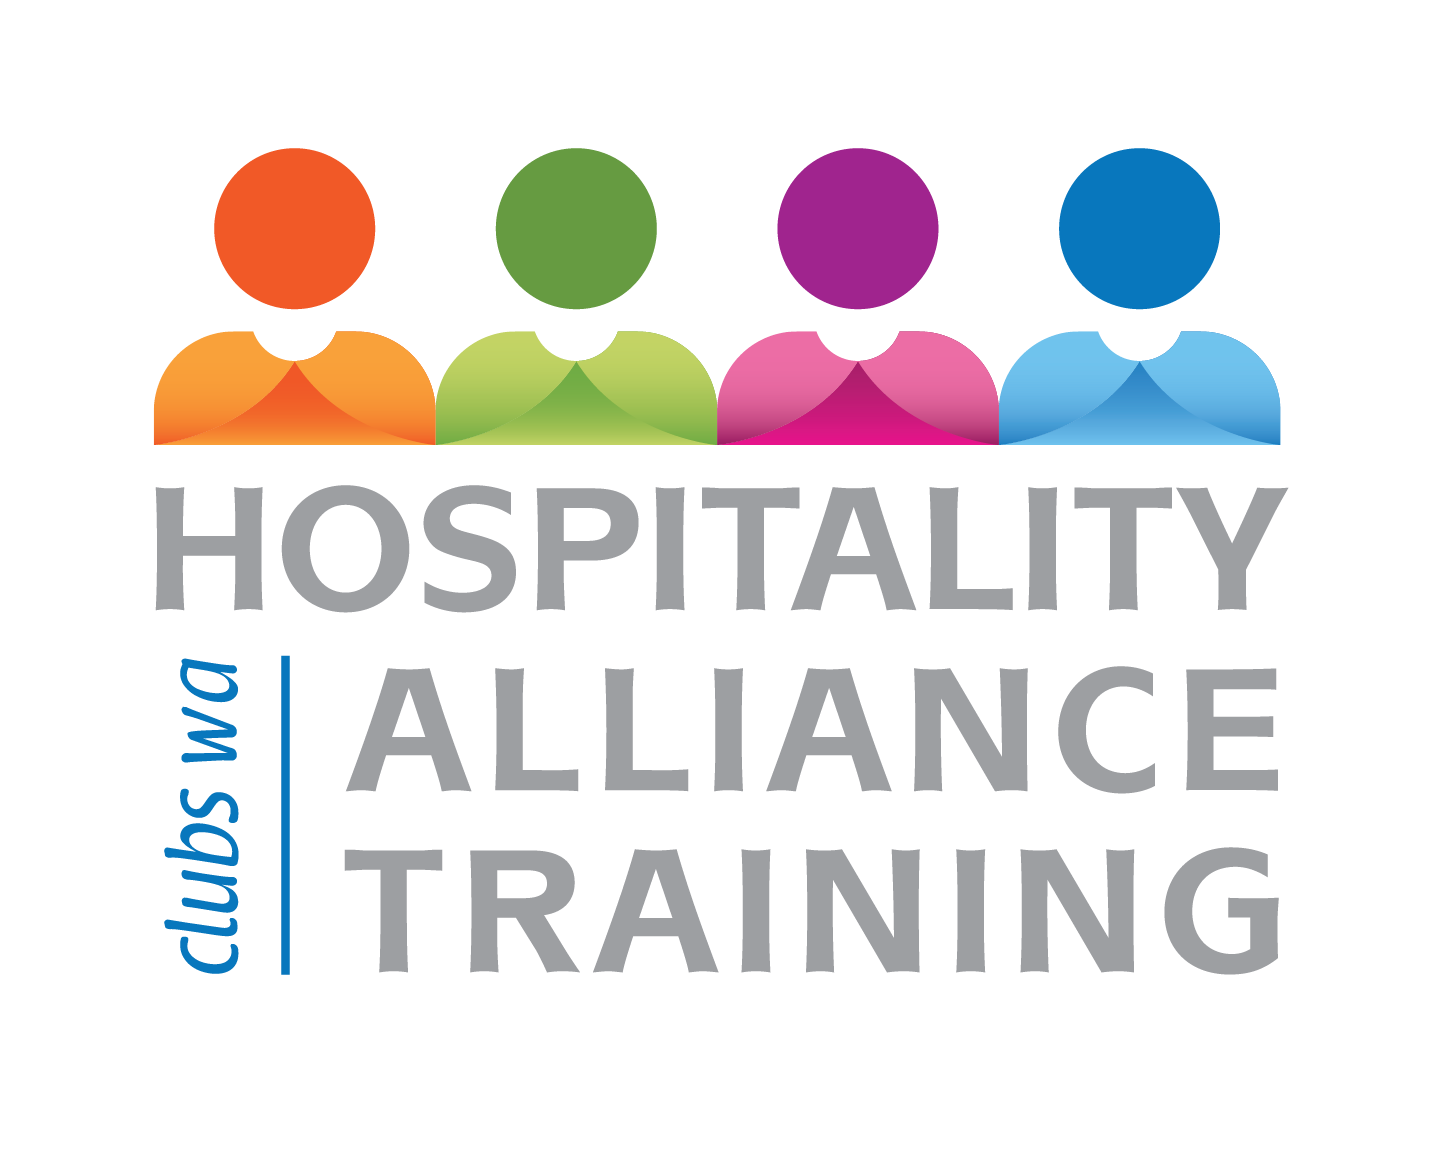 Hospitality Alliance Training